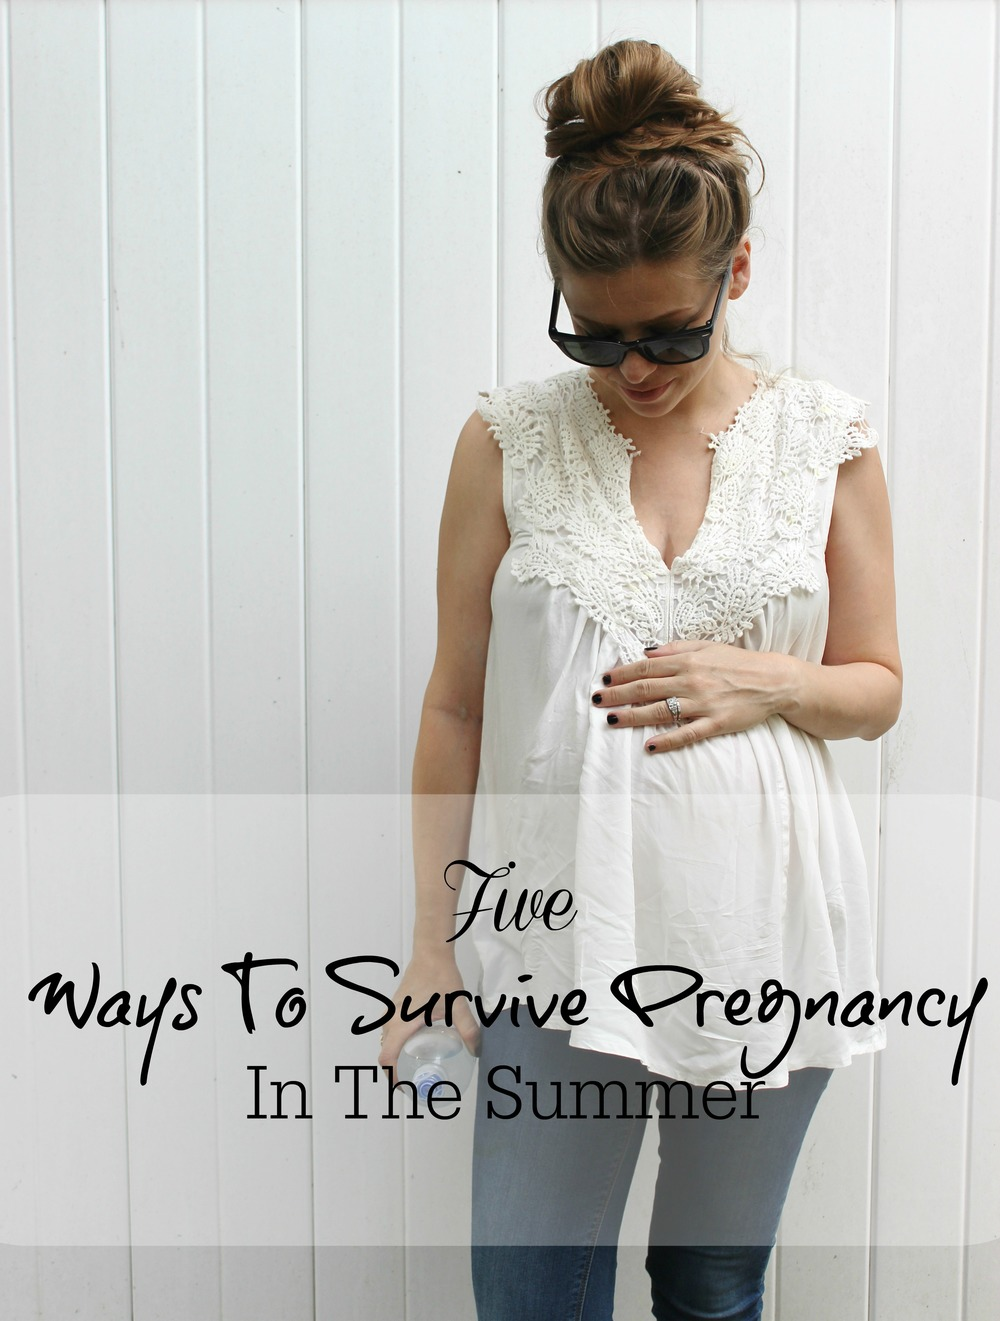 Five Ways To Survive Pregnancy In The Summer